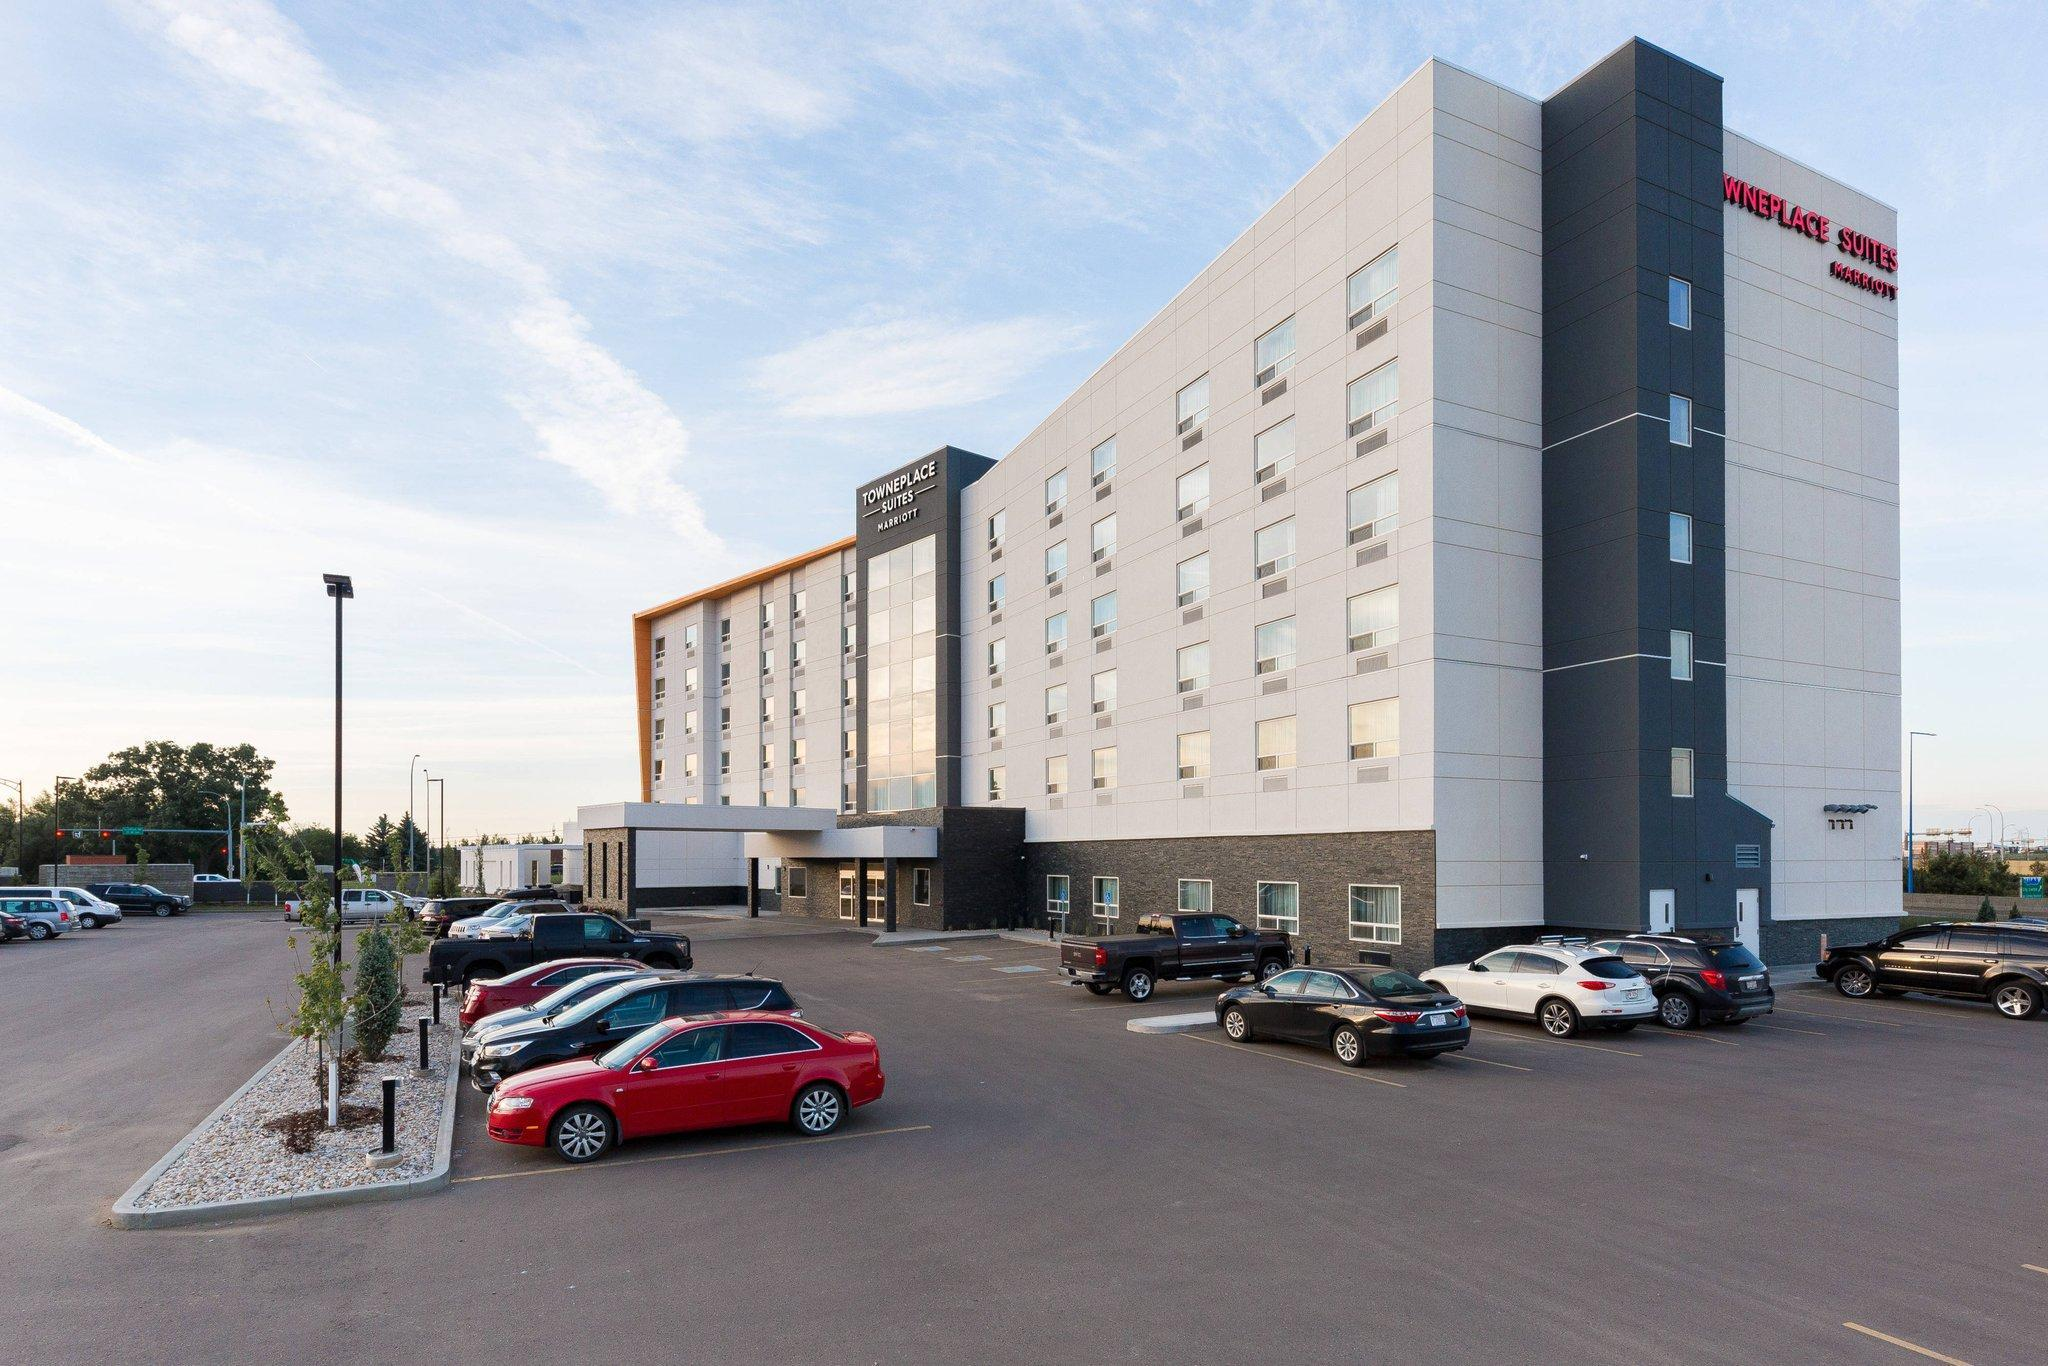 TownePlace Suites by Marriott Edmonton South, Division No. 11